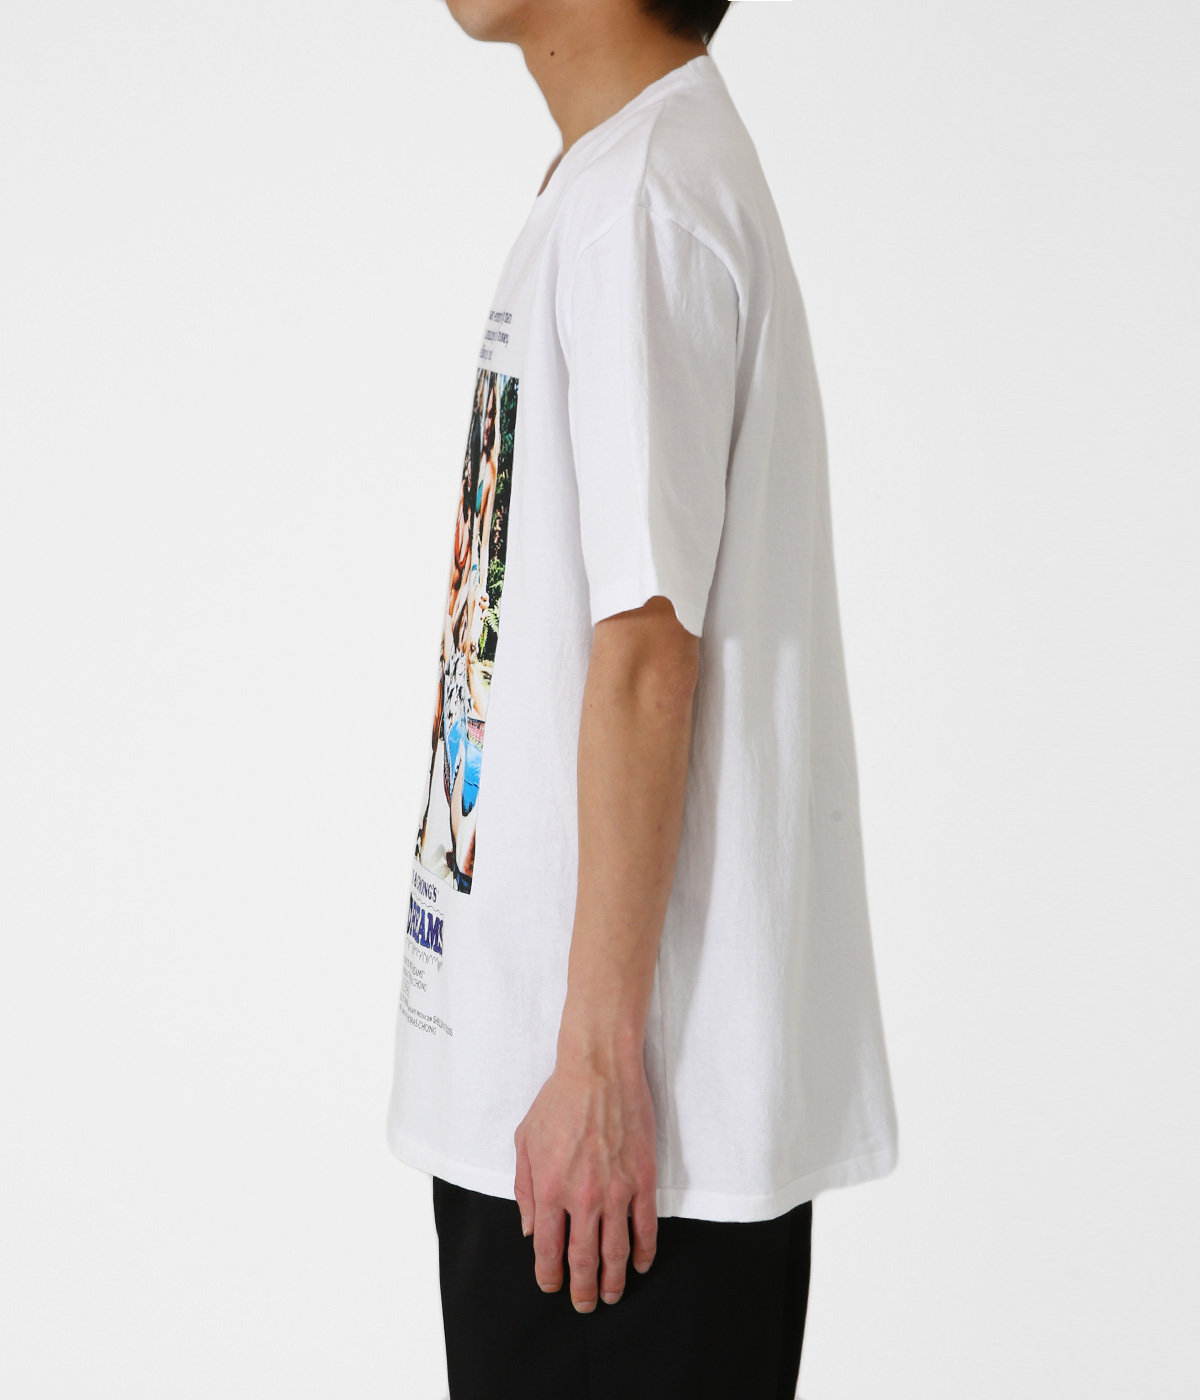 NICE DREAMS / WASHED HEAVY WEIGHT CREW NECK T-SHIRT ( TYPE-1 )